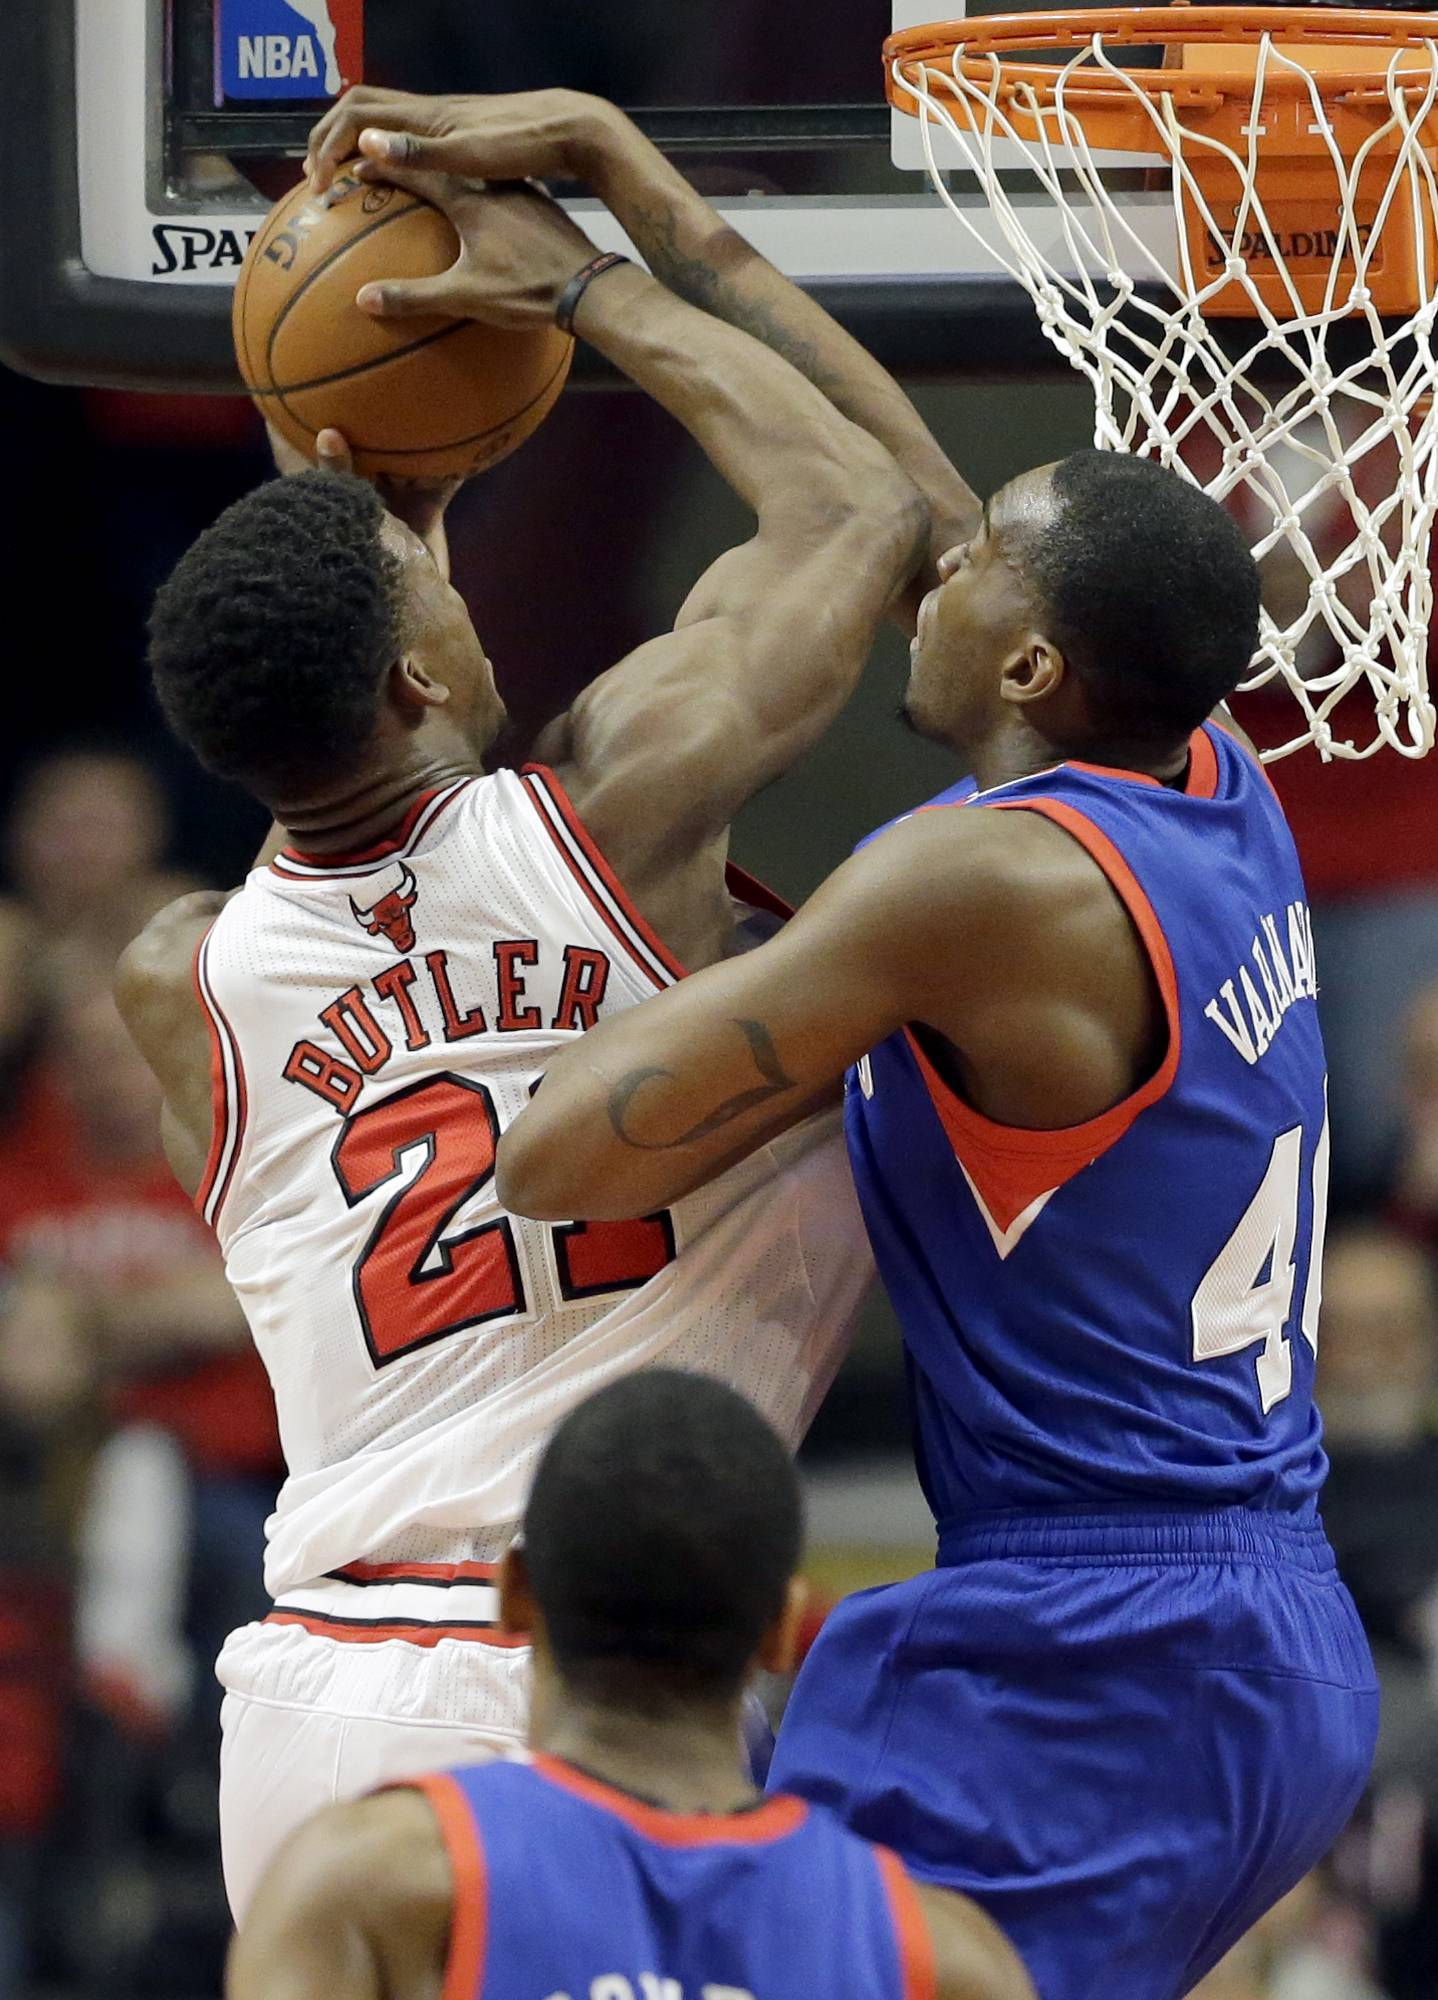 Philadelphia 76ers forward Jarvis Varnado (40), right, blocks a shot by Chicago Bulls guard Jimmy Butler (21) during Saturday night's game at the United Center.